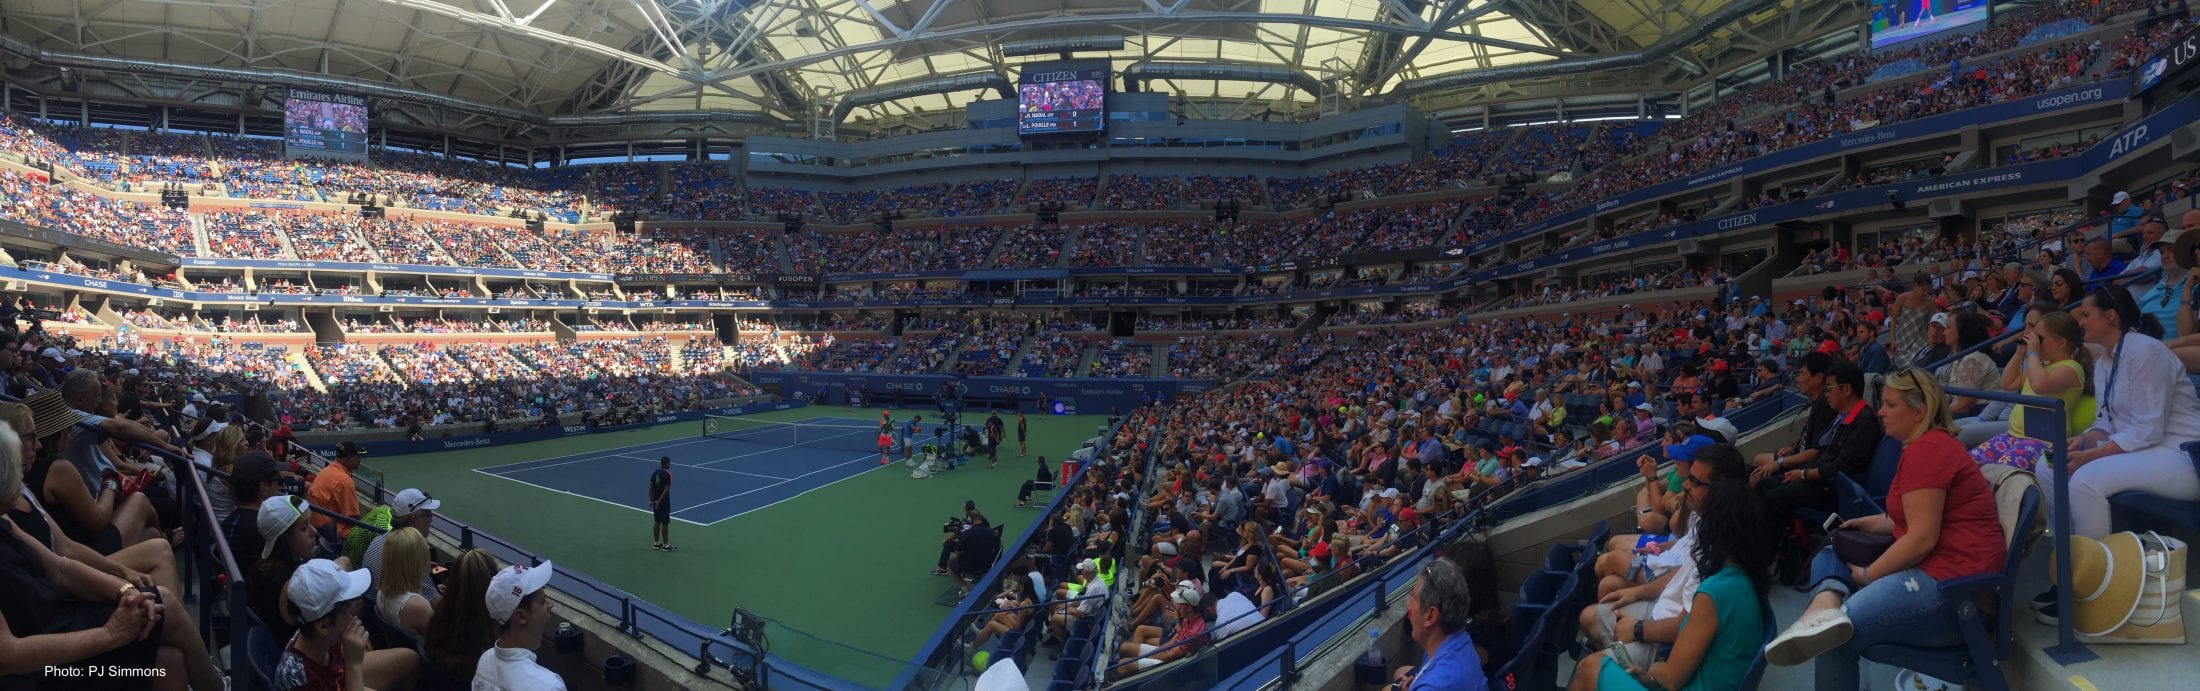 A Serious Tennis Fan's Top 10 Tips for the 2019 US Open